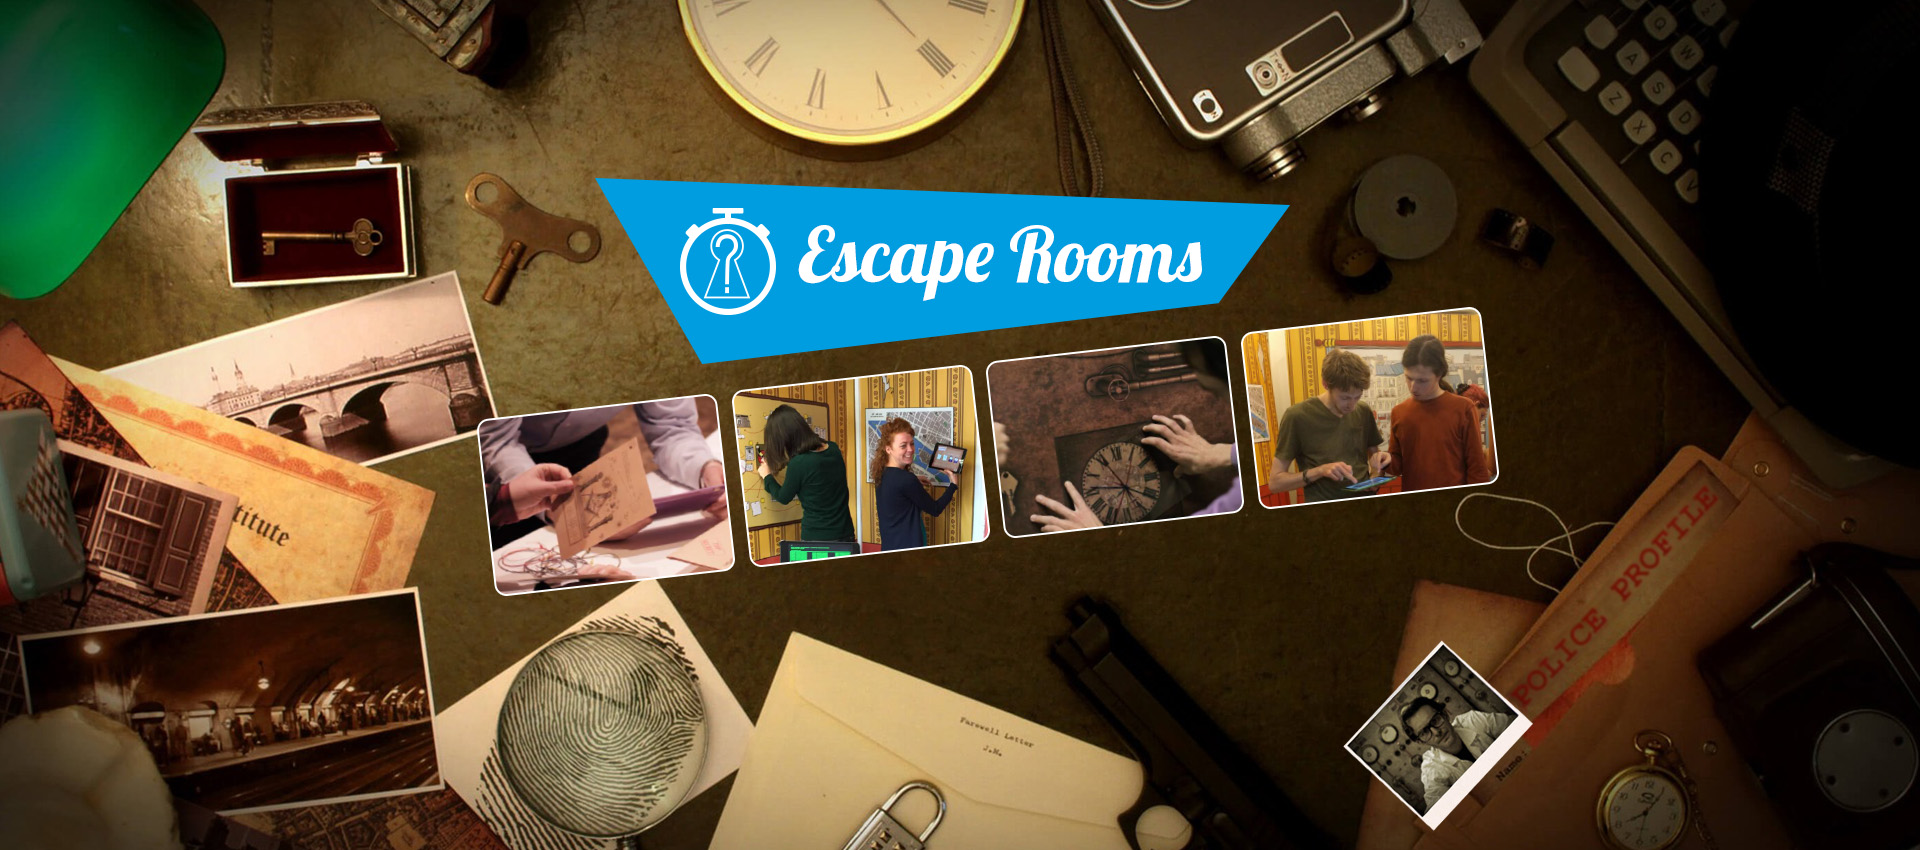 Escape Games - Escape Rooms